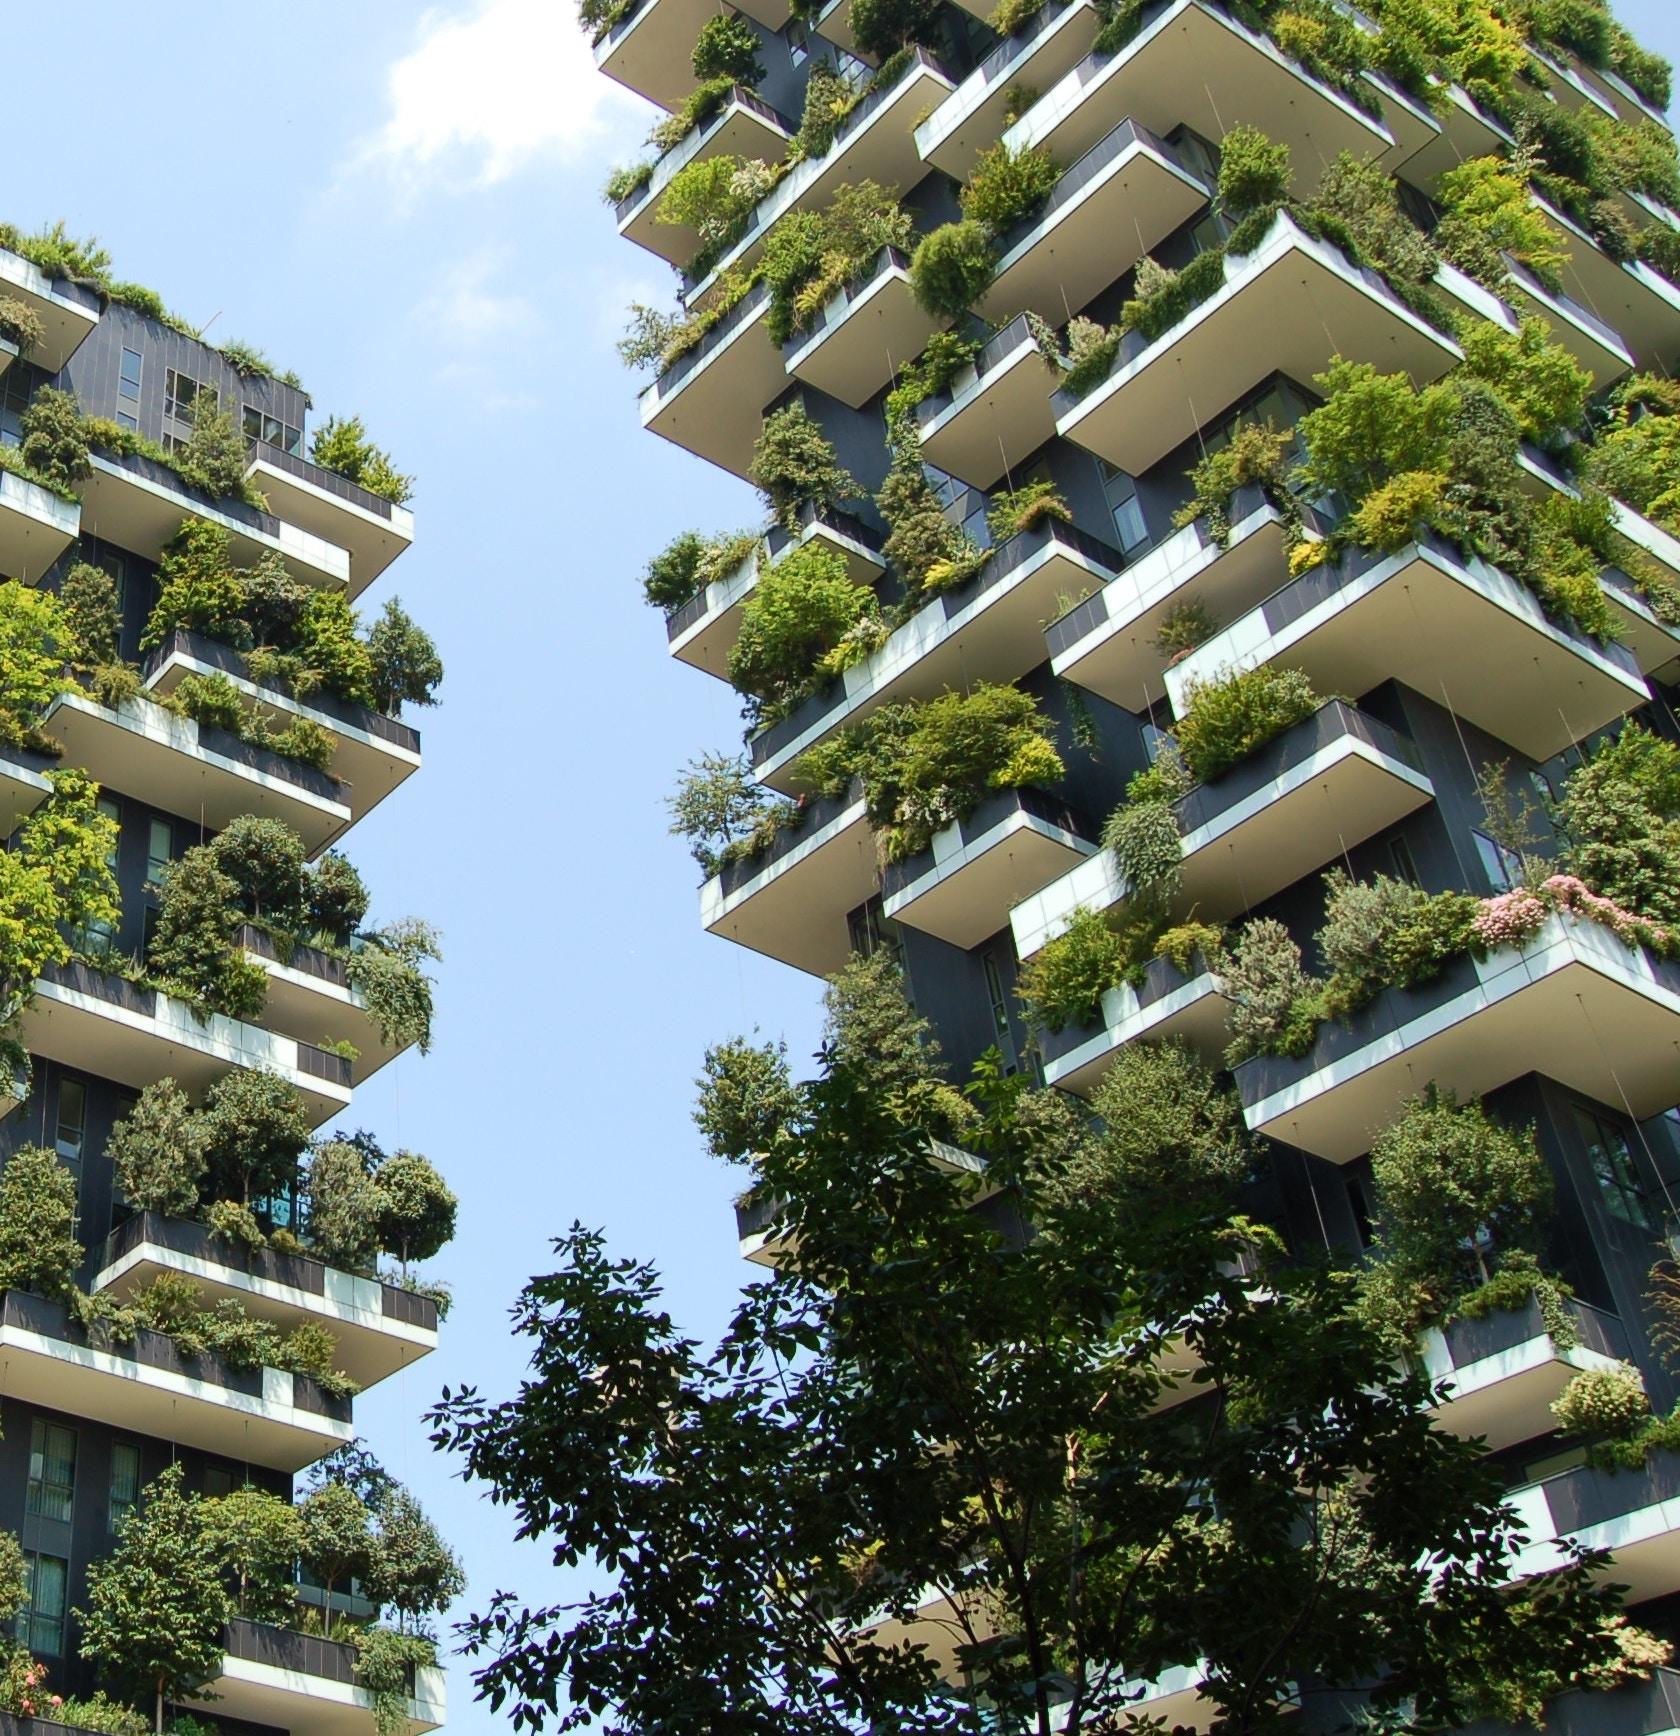 Green building in a smart city